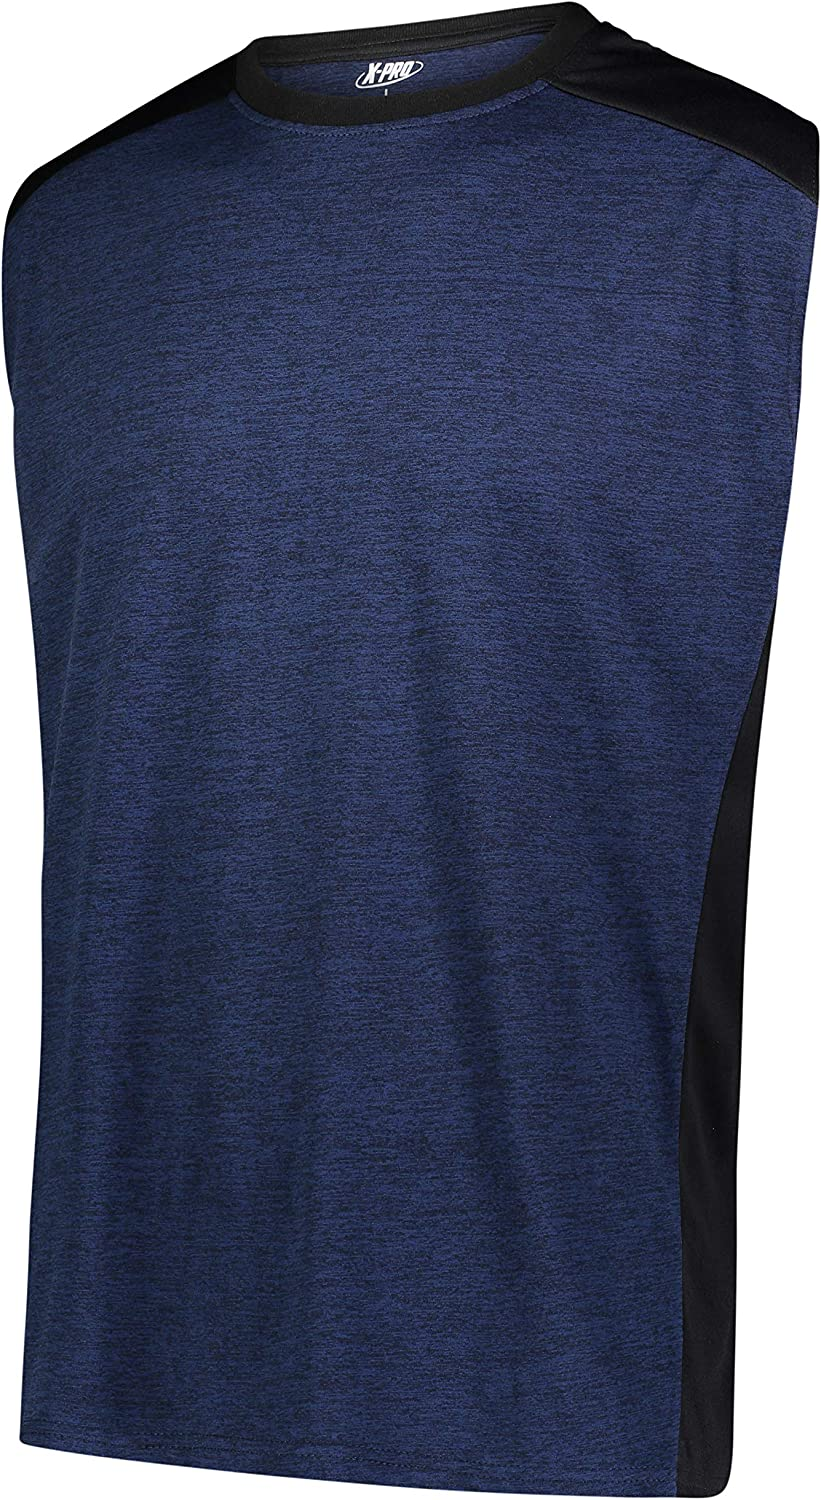 X-Large, Navy X-PRO Mens Sleeveless Dry-FIT Athletic Performance Tee for Men 3 Pack Moisture Wicking T-Shirts